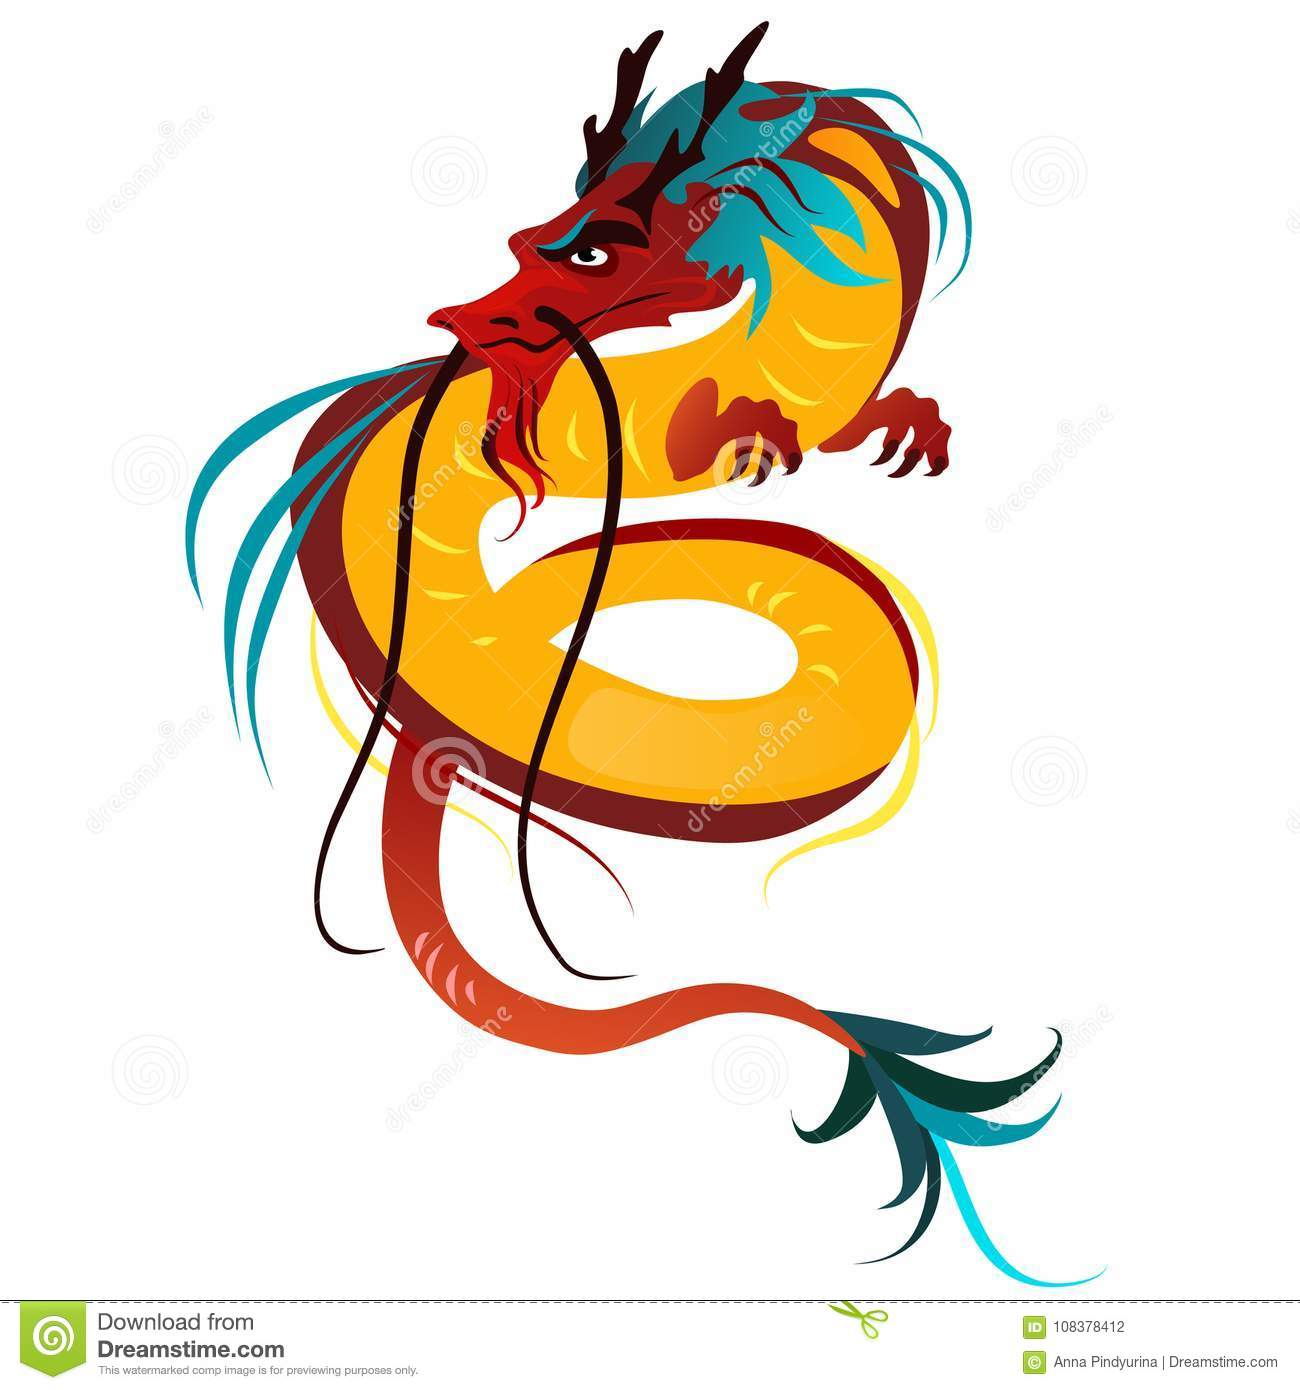 traditional chinese dragon ancient symbol of asian or china culture decoration for new year